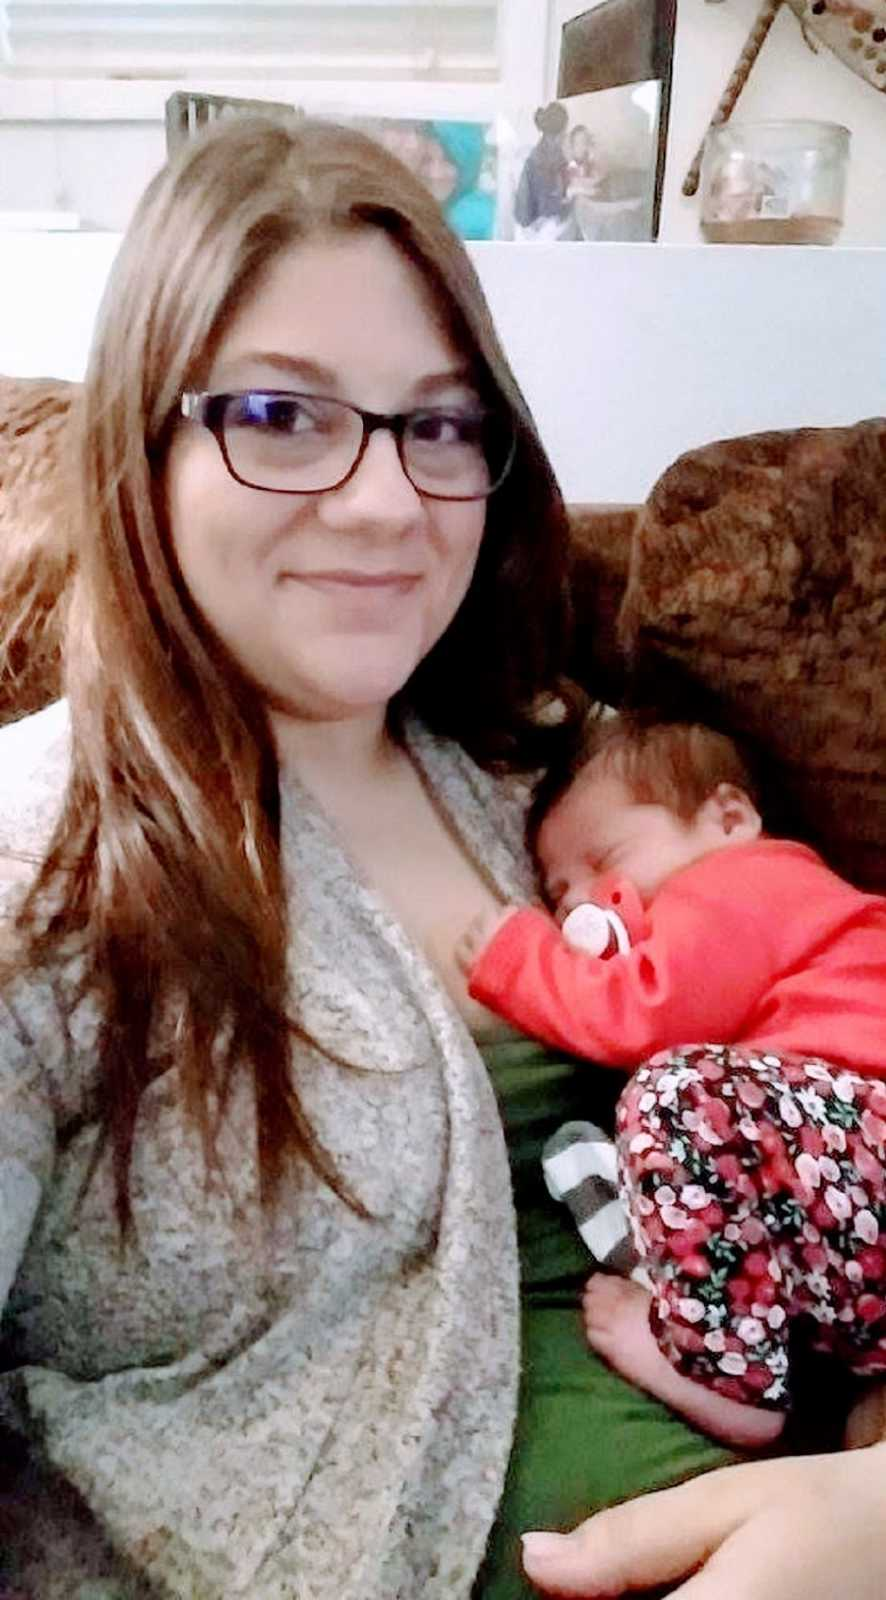 Girl mom takes selfie of her newborn daughter curled up sleeping on her chest